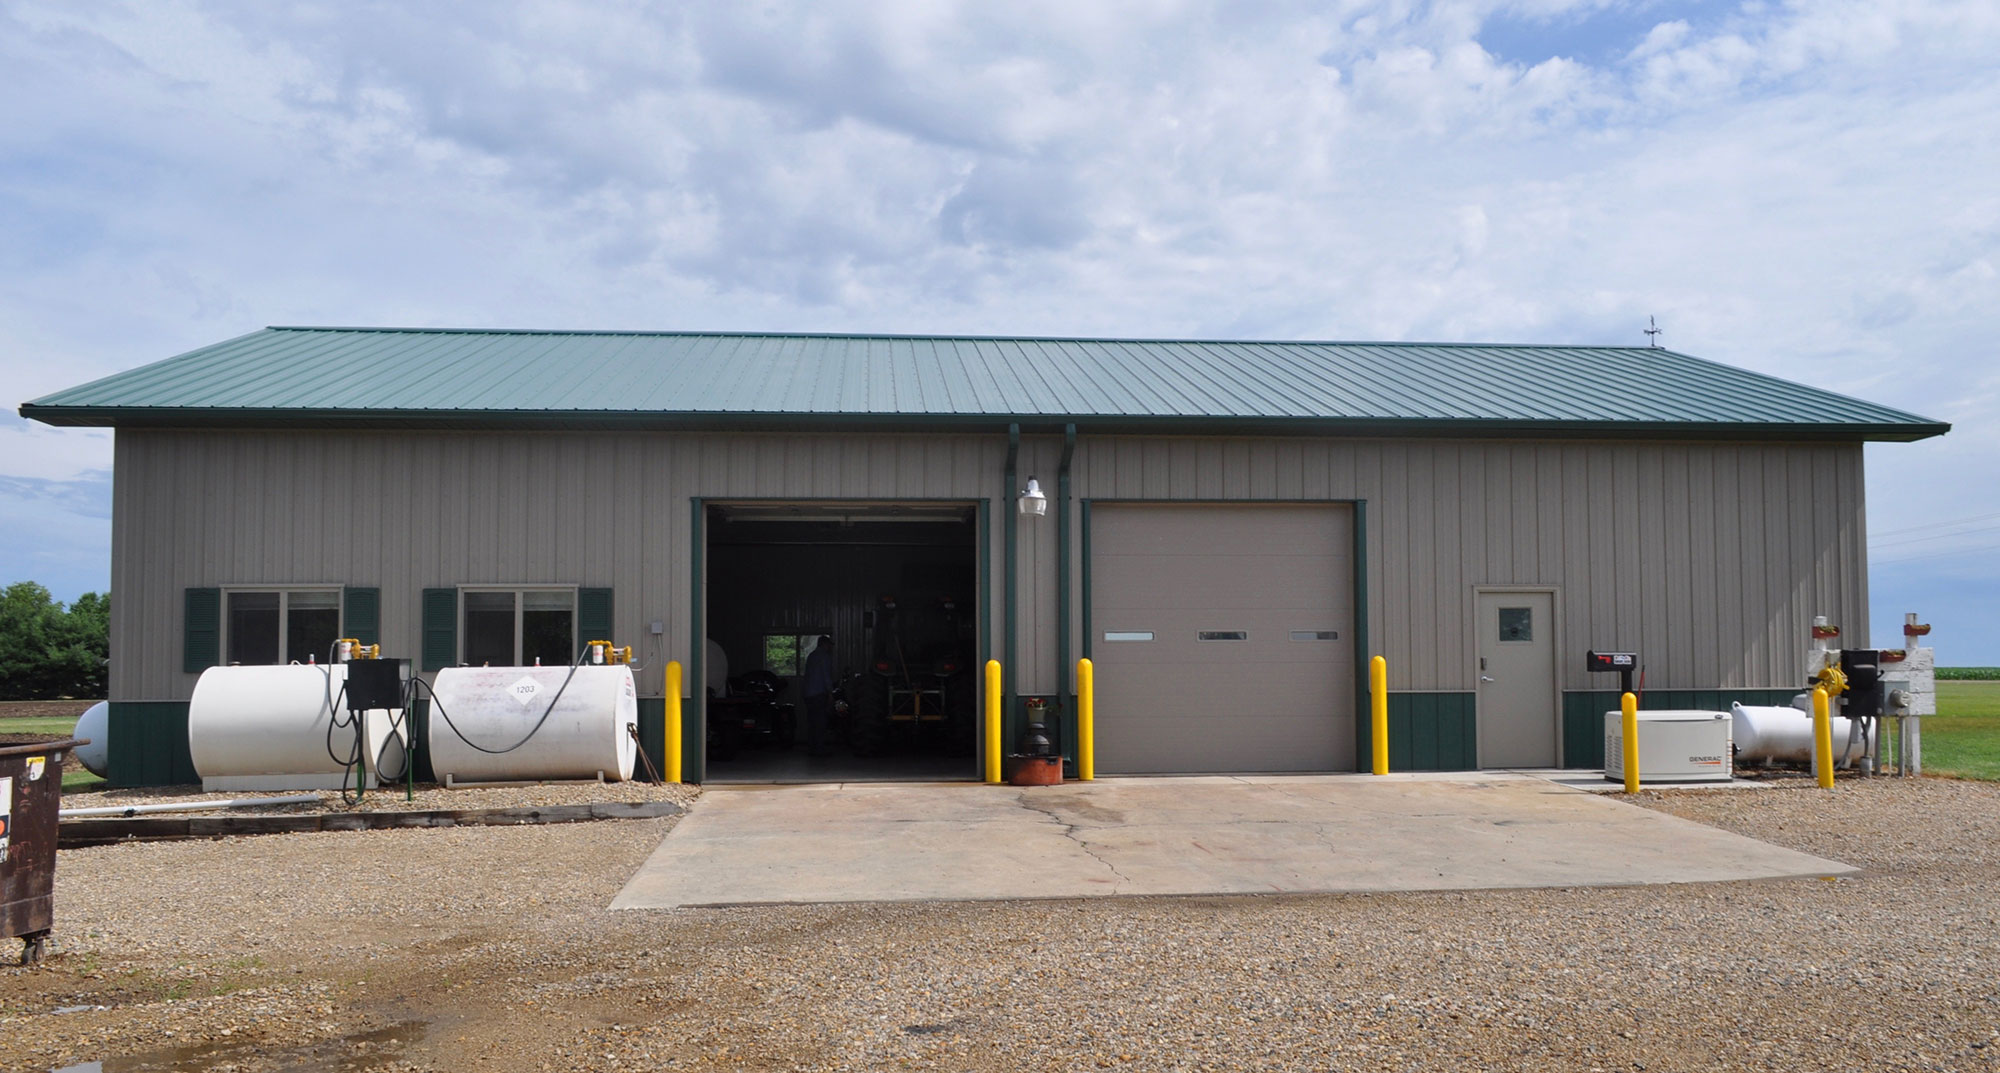 http://hartmanstatewide.com/sites/hartmanstatewide.com/assets/images/Project/RCHartmanbuildings10.jpg